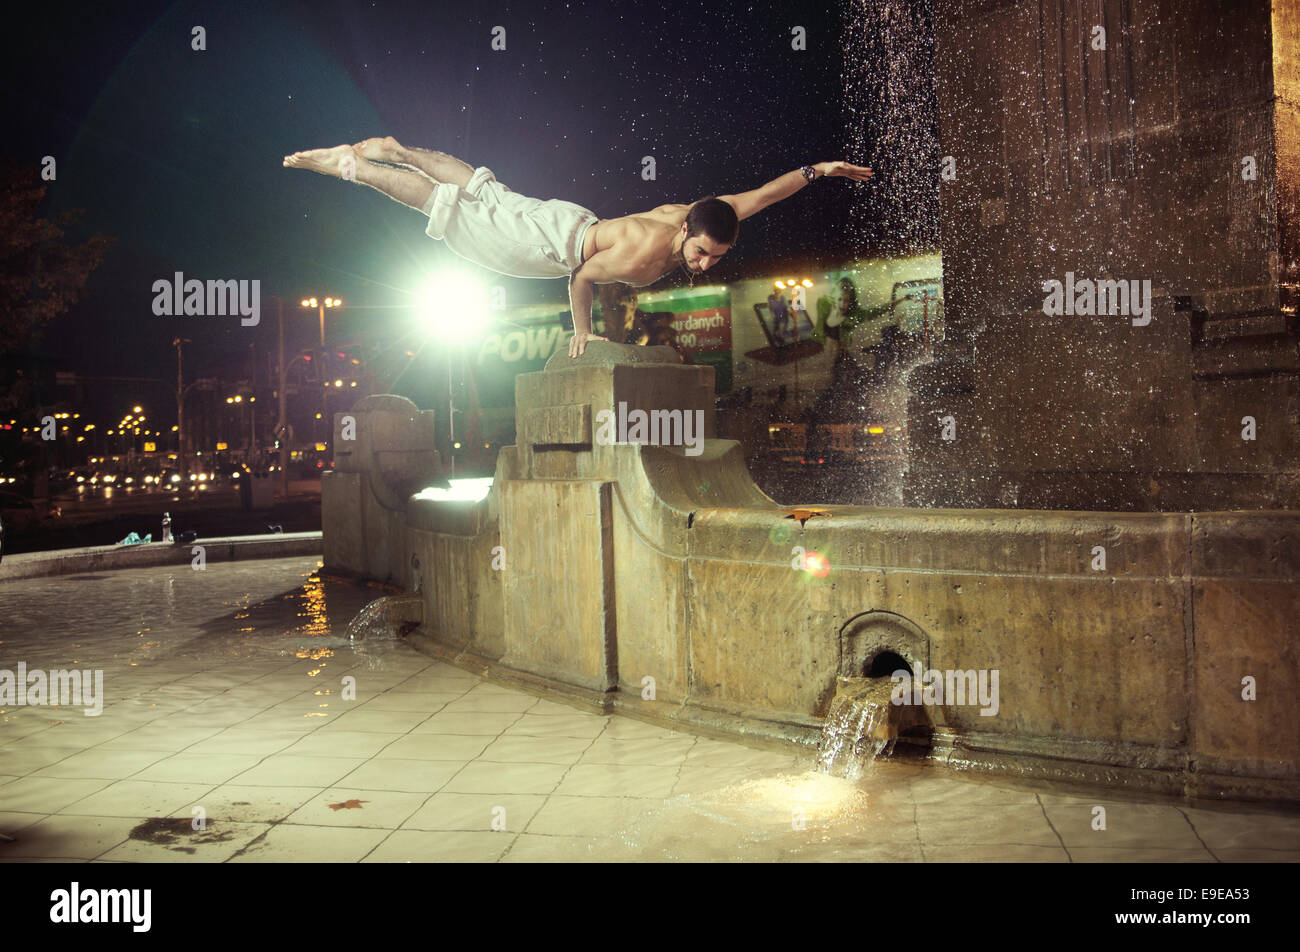 Muscular guy doing push-ups in a fountain - Stock Image